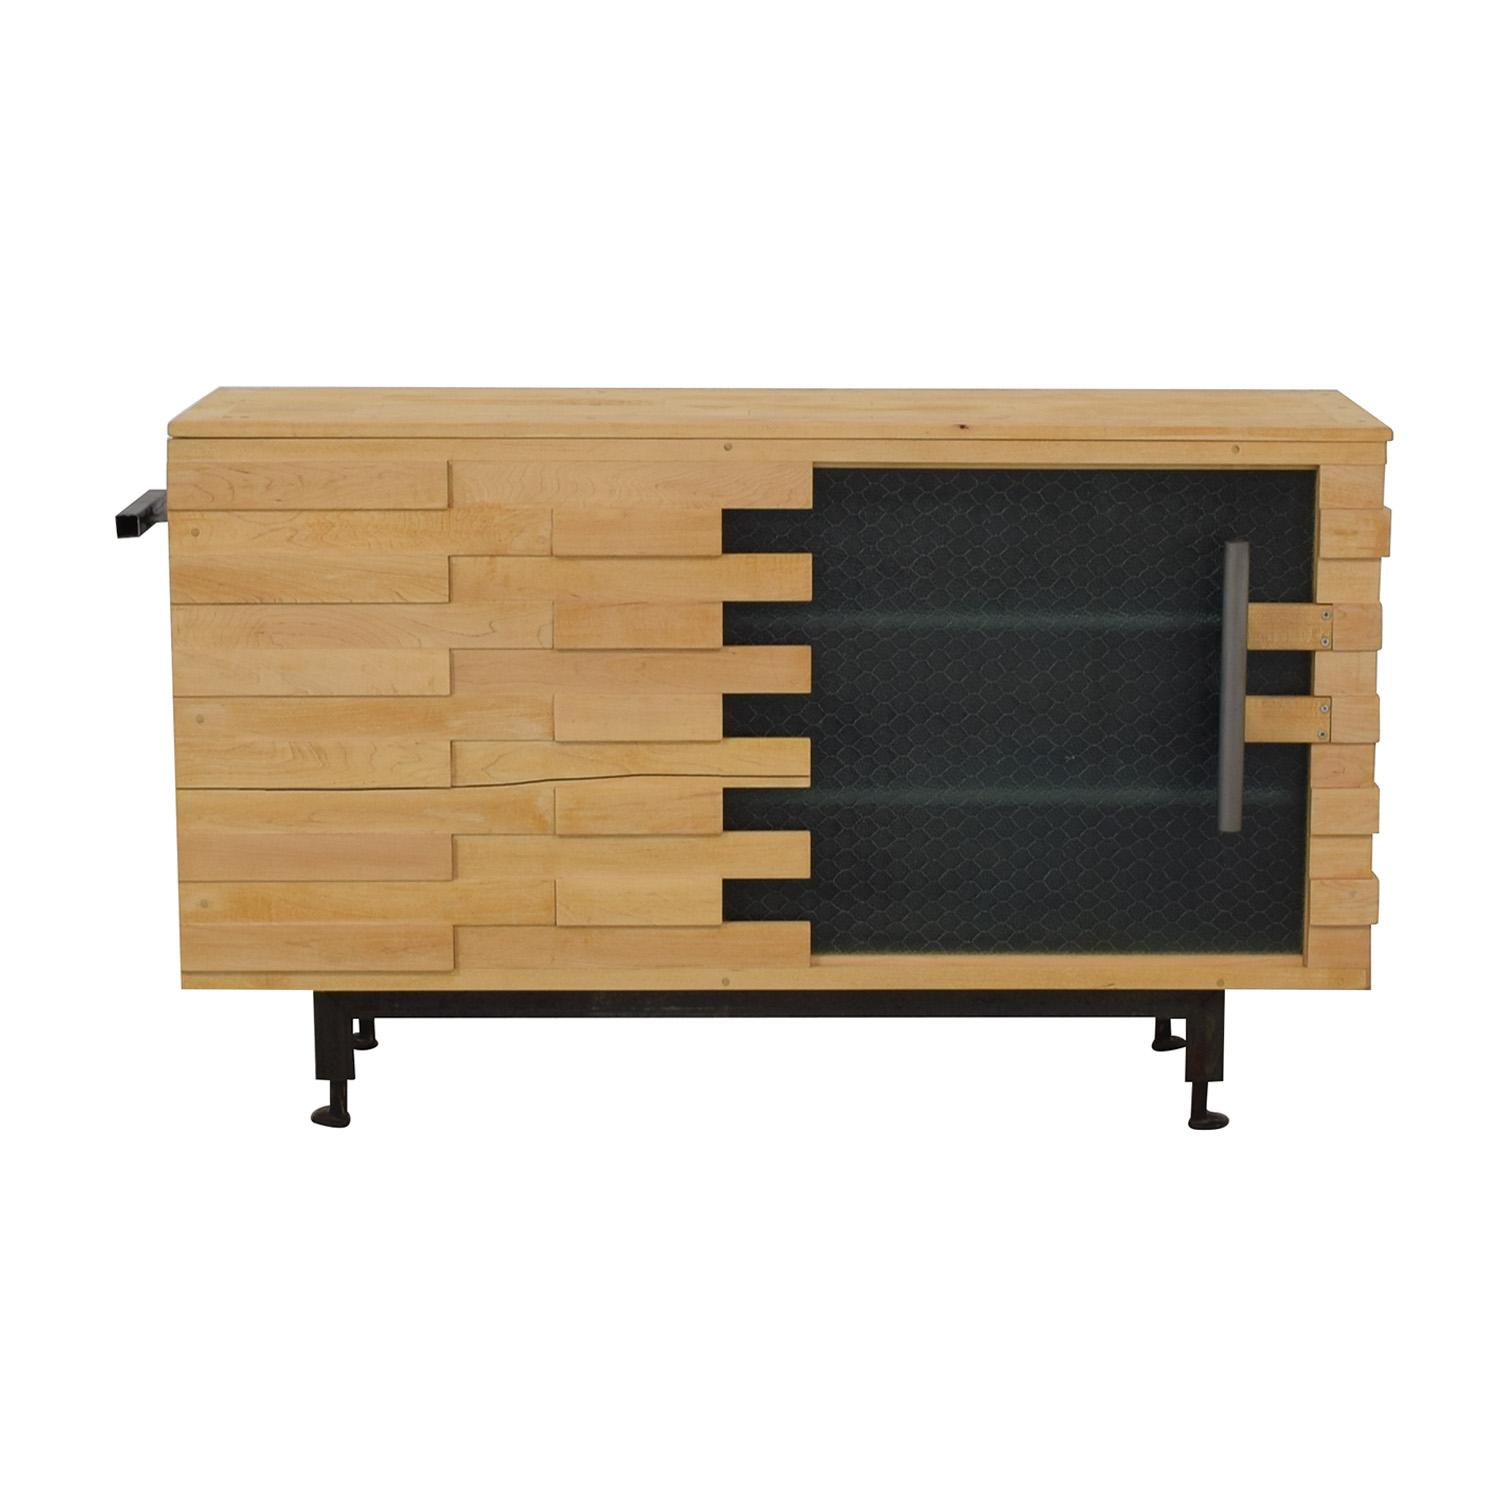 Etsy Etsy Custom Made Modern Credenza for sale